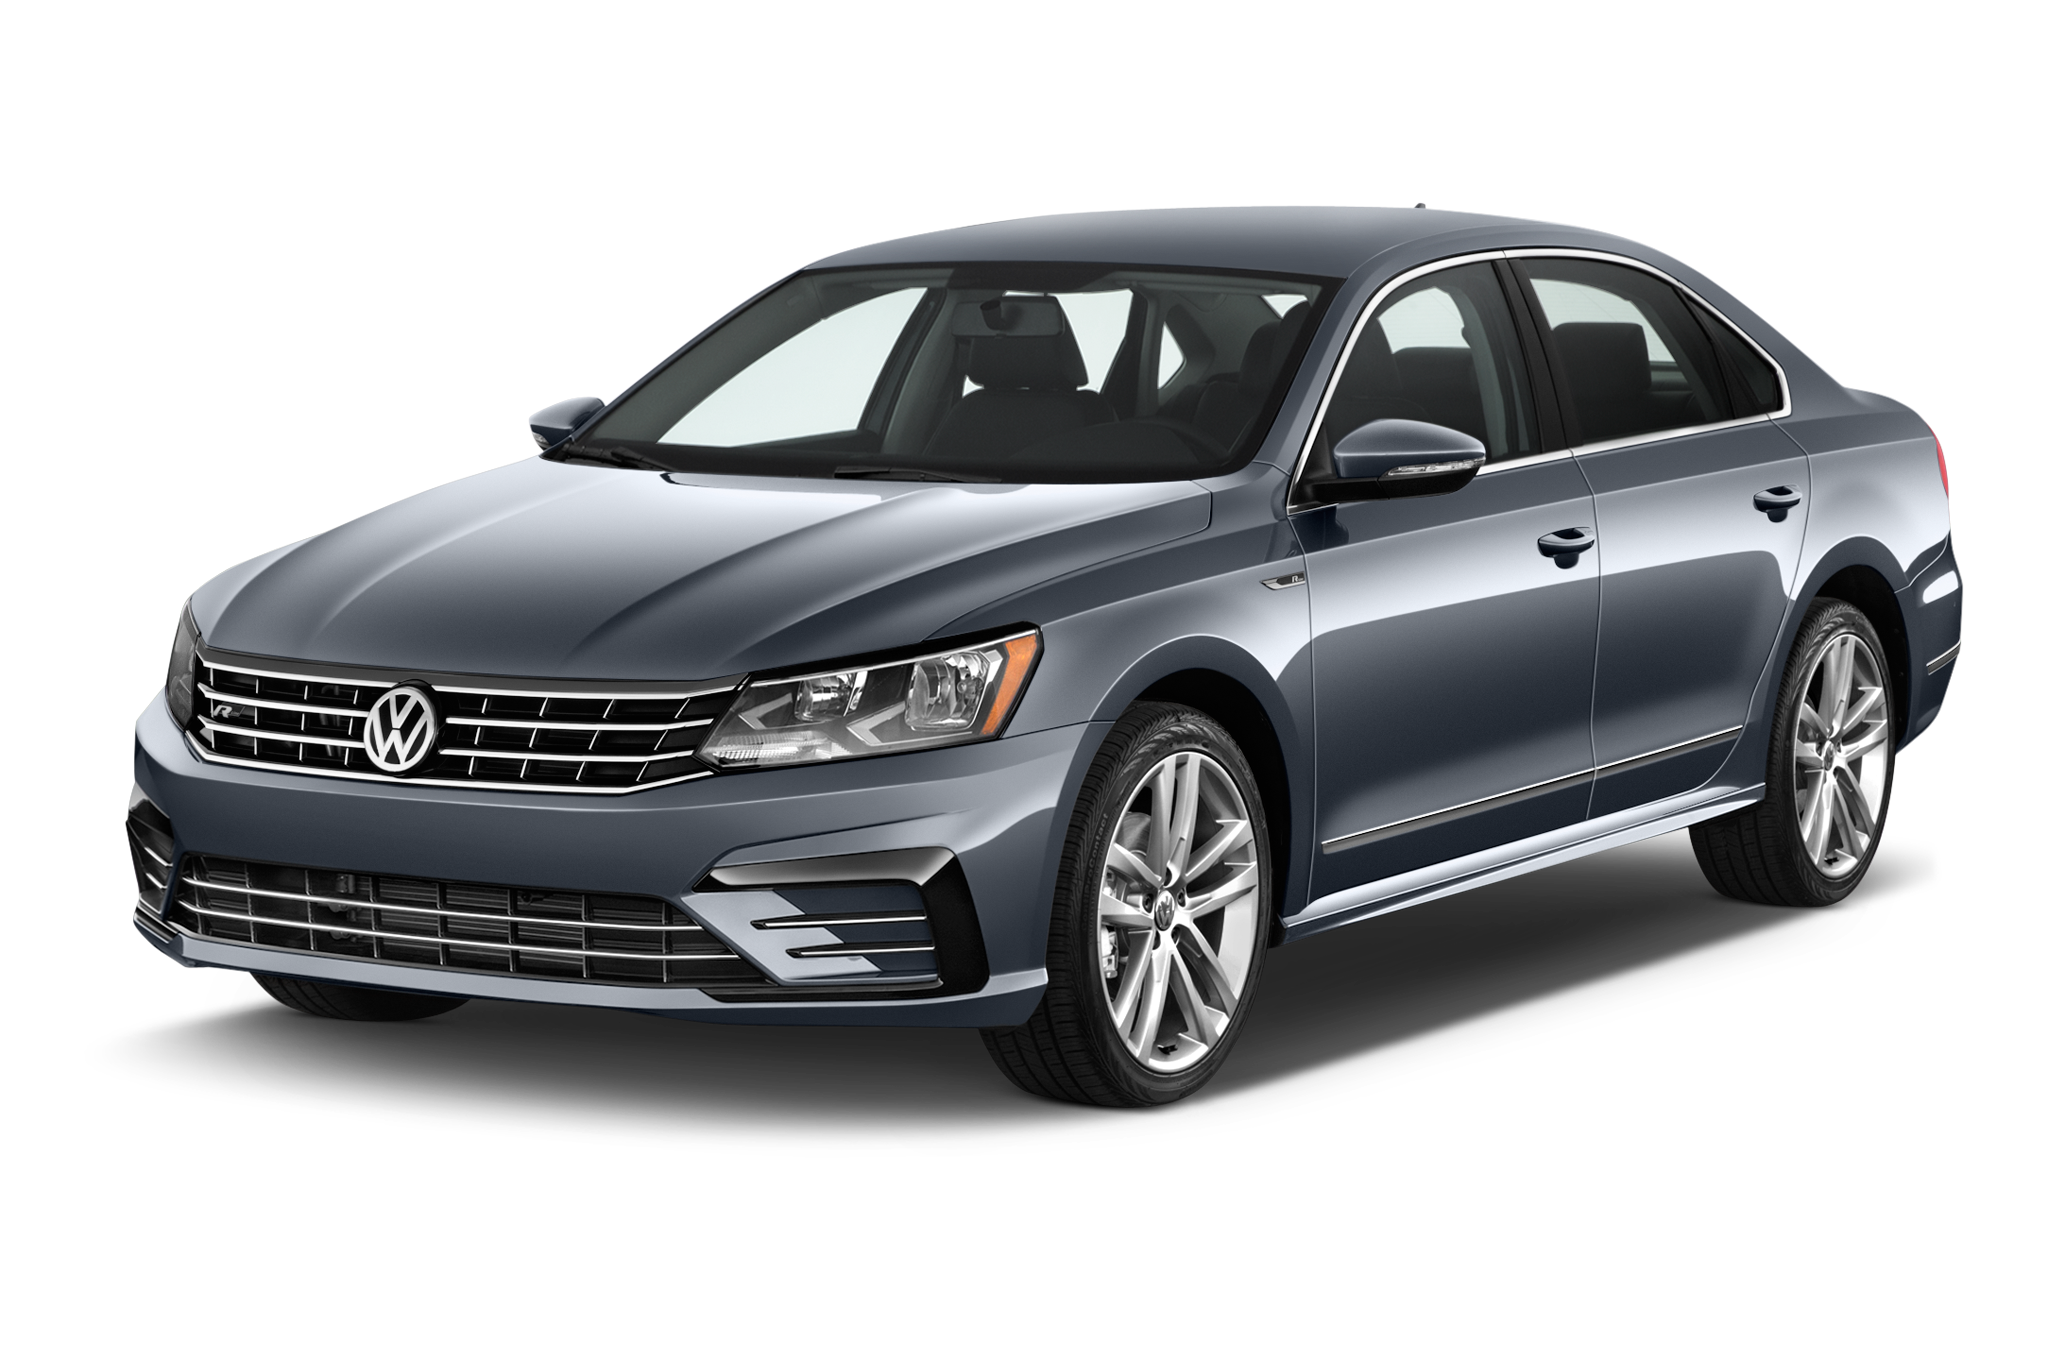 2018 volkswagen passat gt debuts in detroit automobile magazine. Black Bedroom Furniture Sets. Home Design Ideas